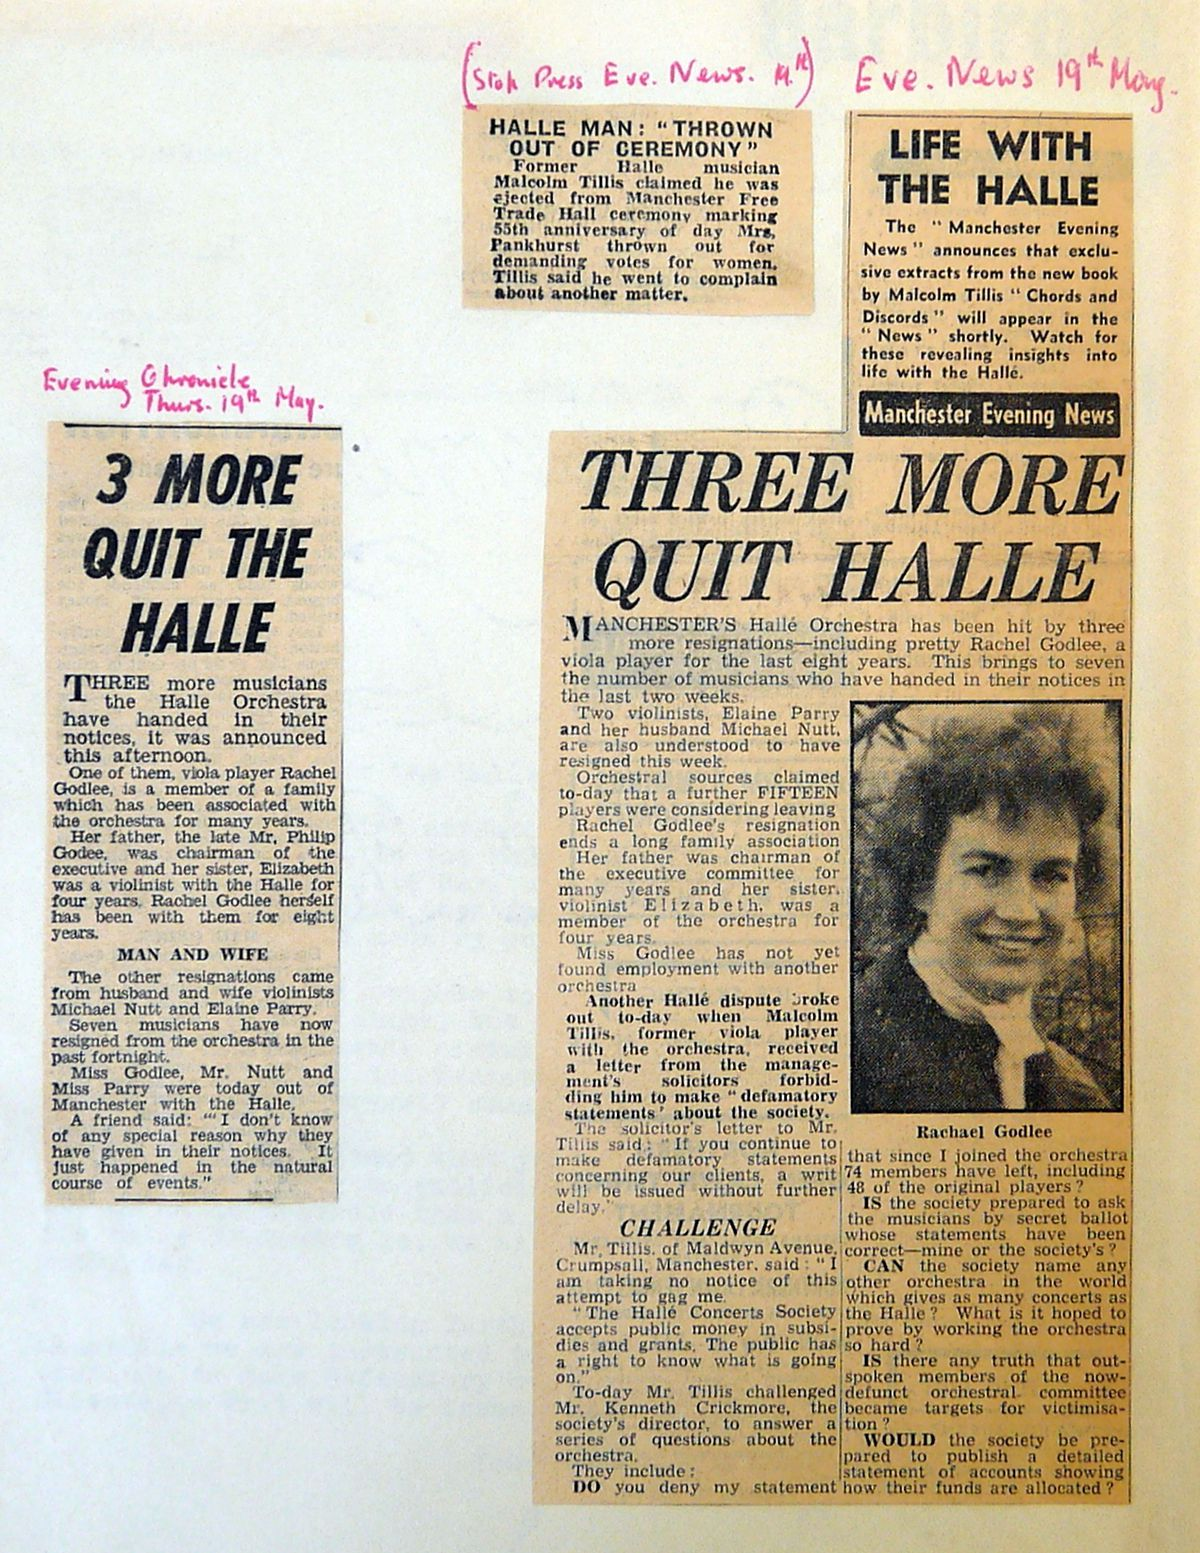 Press coverage which followed the fall-out from Malcolm Tillis's controversial book Chords and Discords